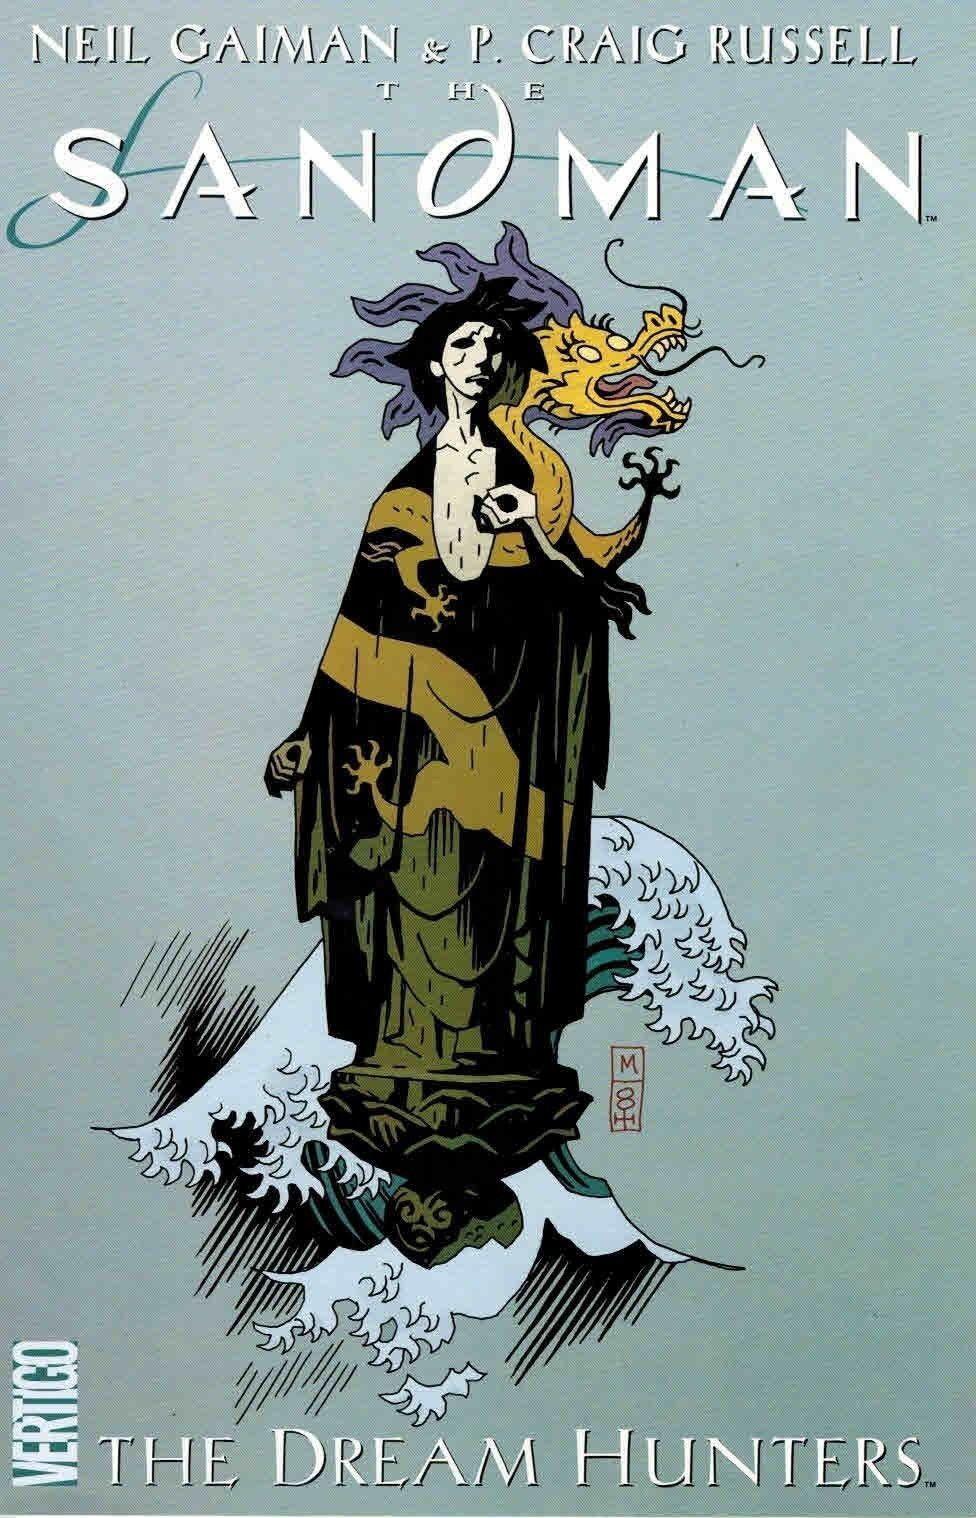 Book Cover Design Reference : Pin by paul simic on mike mignola art pinterest cómic